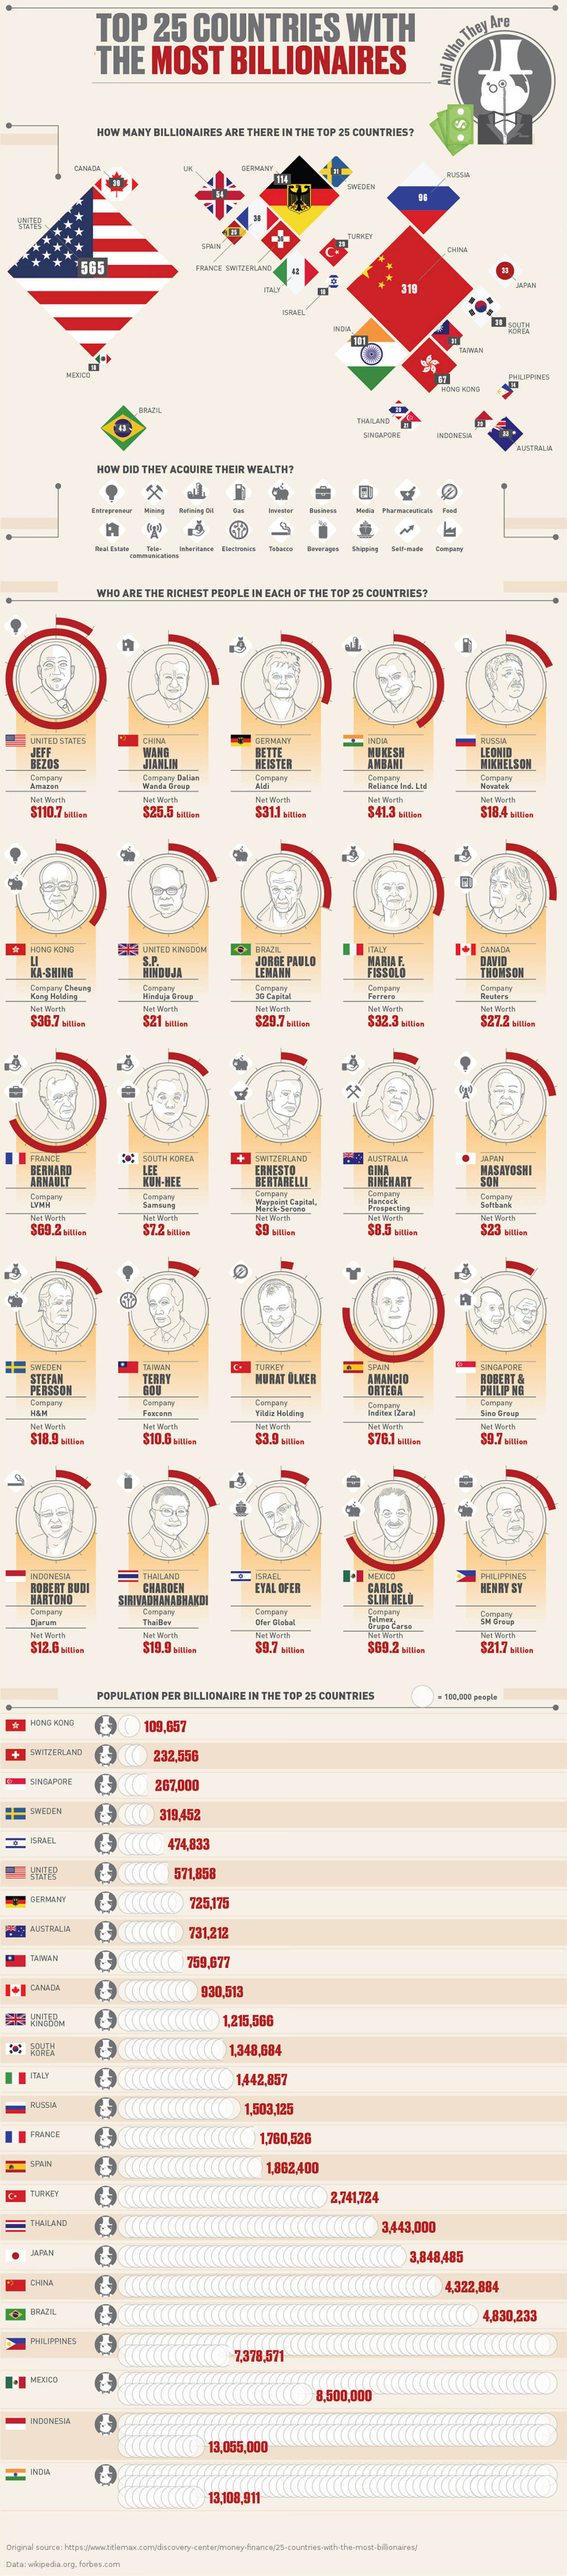 How many billionaires are there in the top 25 countries?